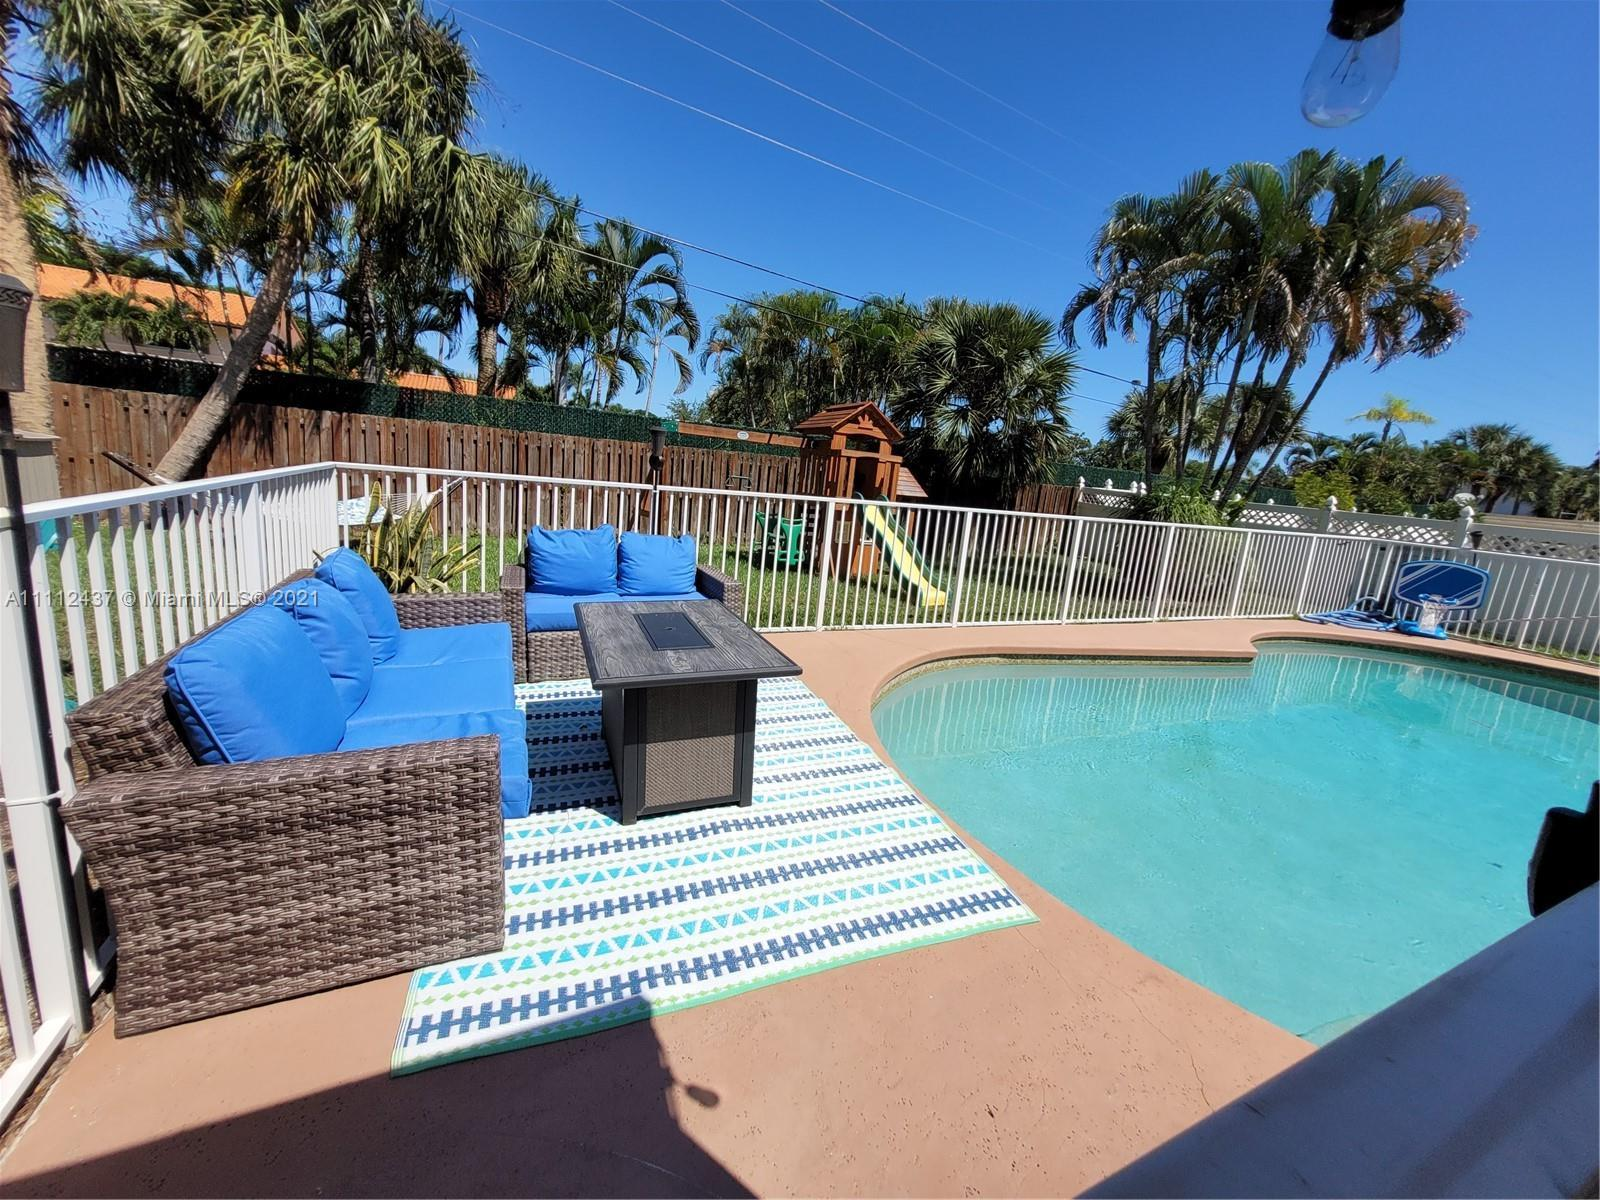 Beautifully Remodeled 3/2, New A/c, New Kitchen, New bathrooms, New Floors, Pool lighting System, Im